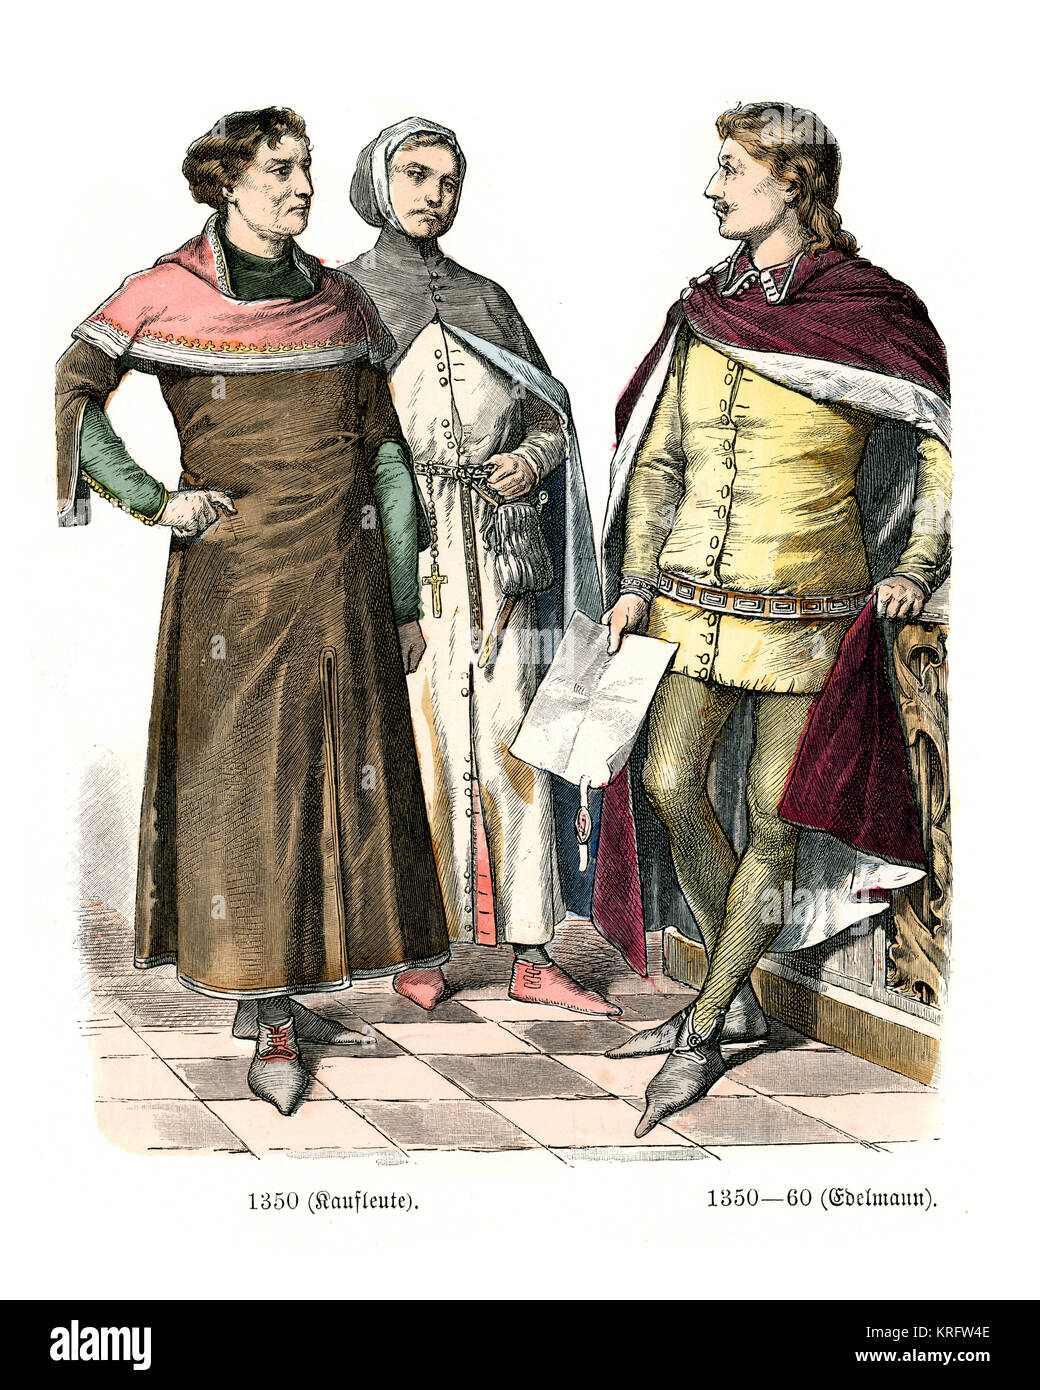 Vintage engraving of English medieval clothing, 14th Century - Stock Image